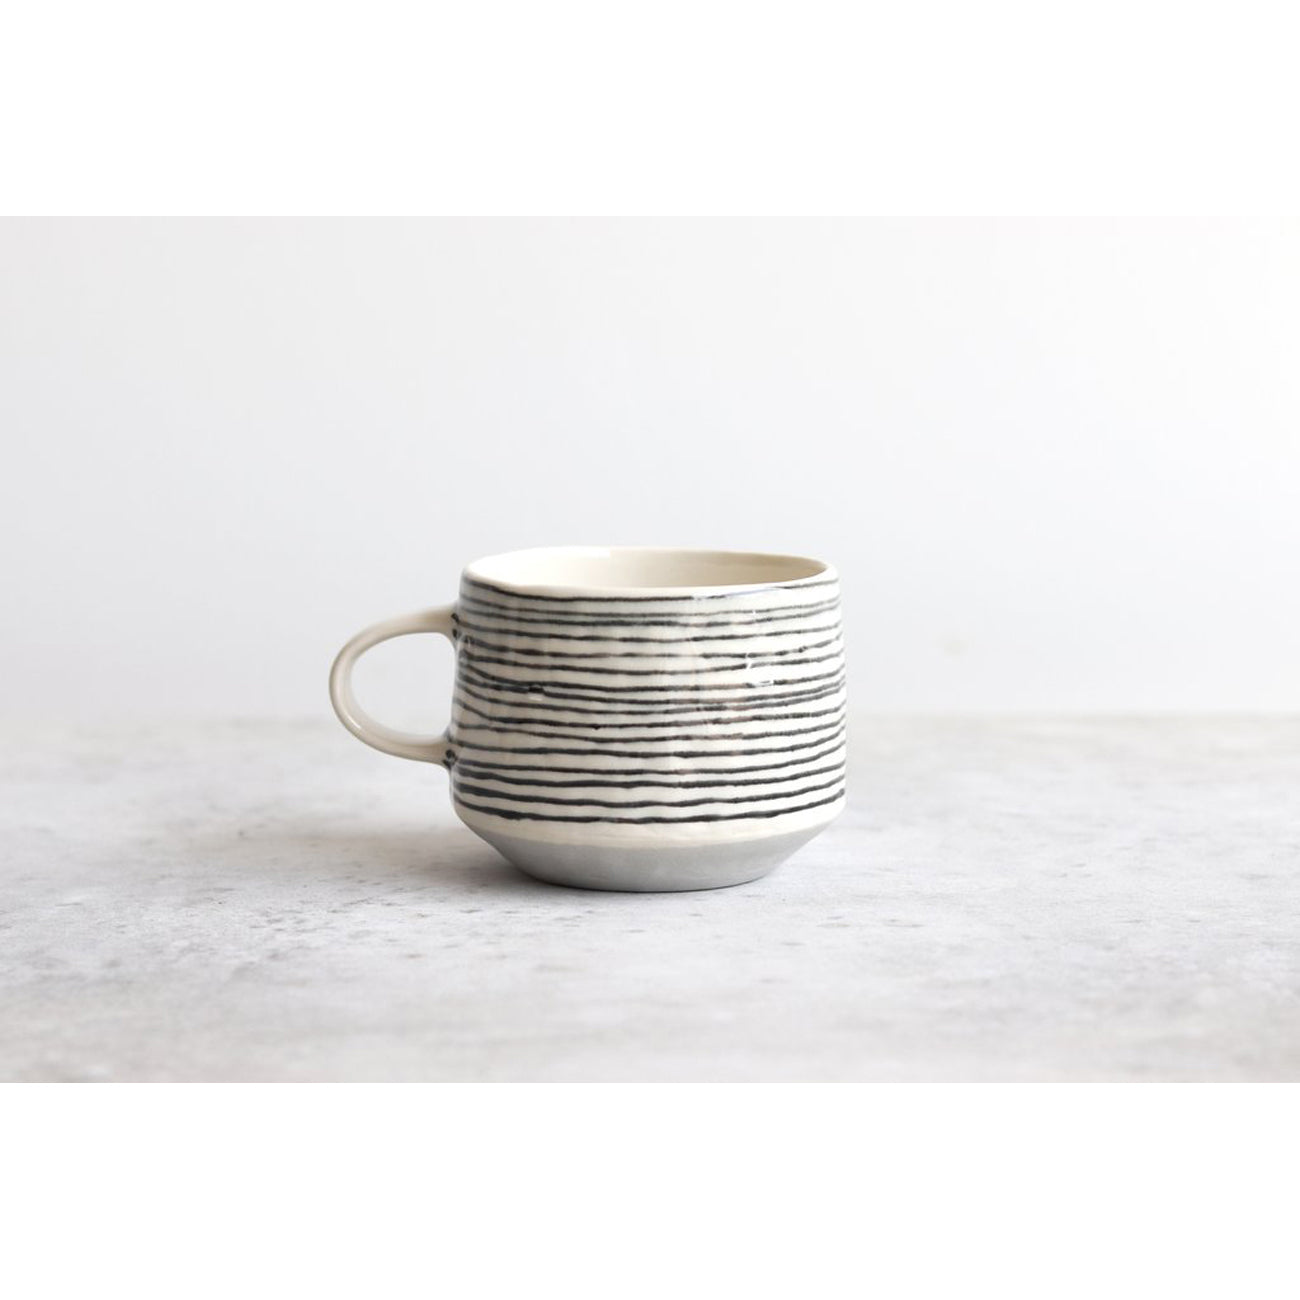 ebb & flow striped mug